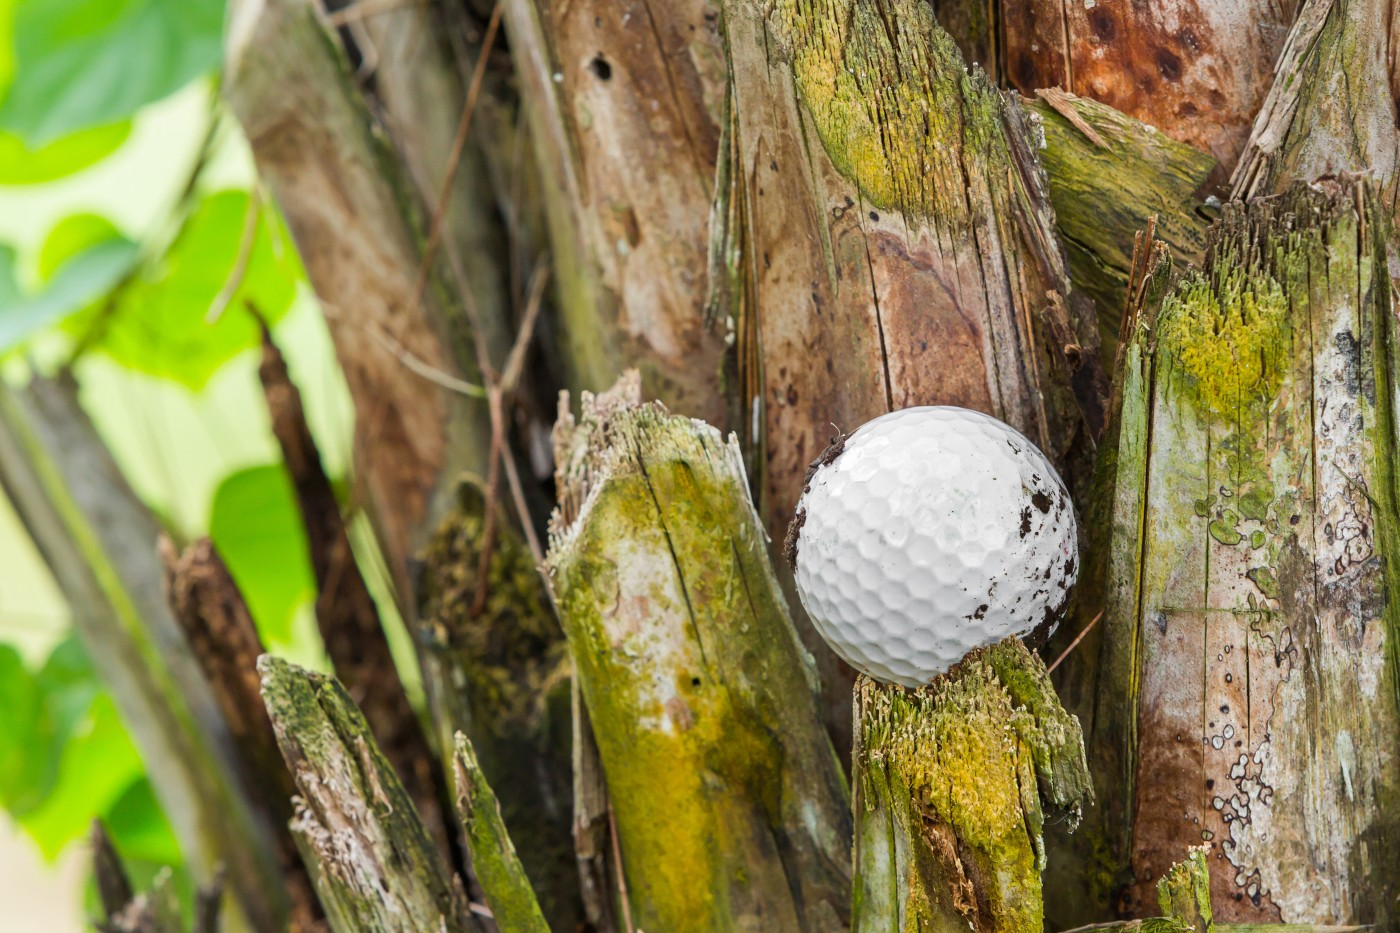 https://tickertapecdn.tdameritrade.com/assets/images/pages/md/Golf ball stuck in a tree: Stock replacement strategy